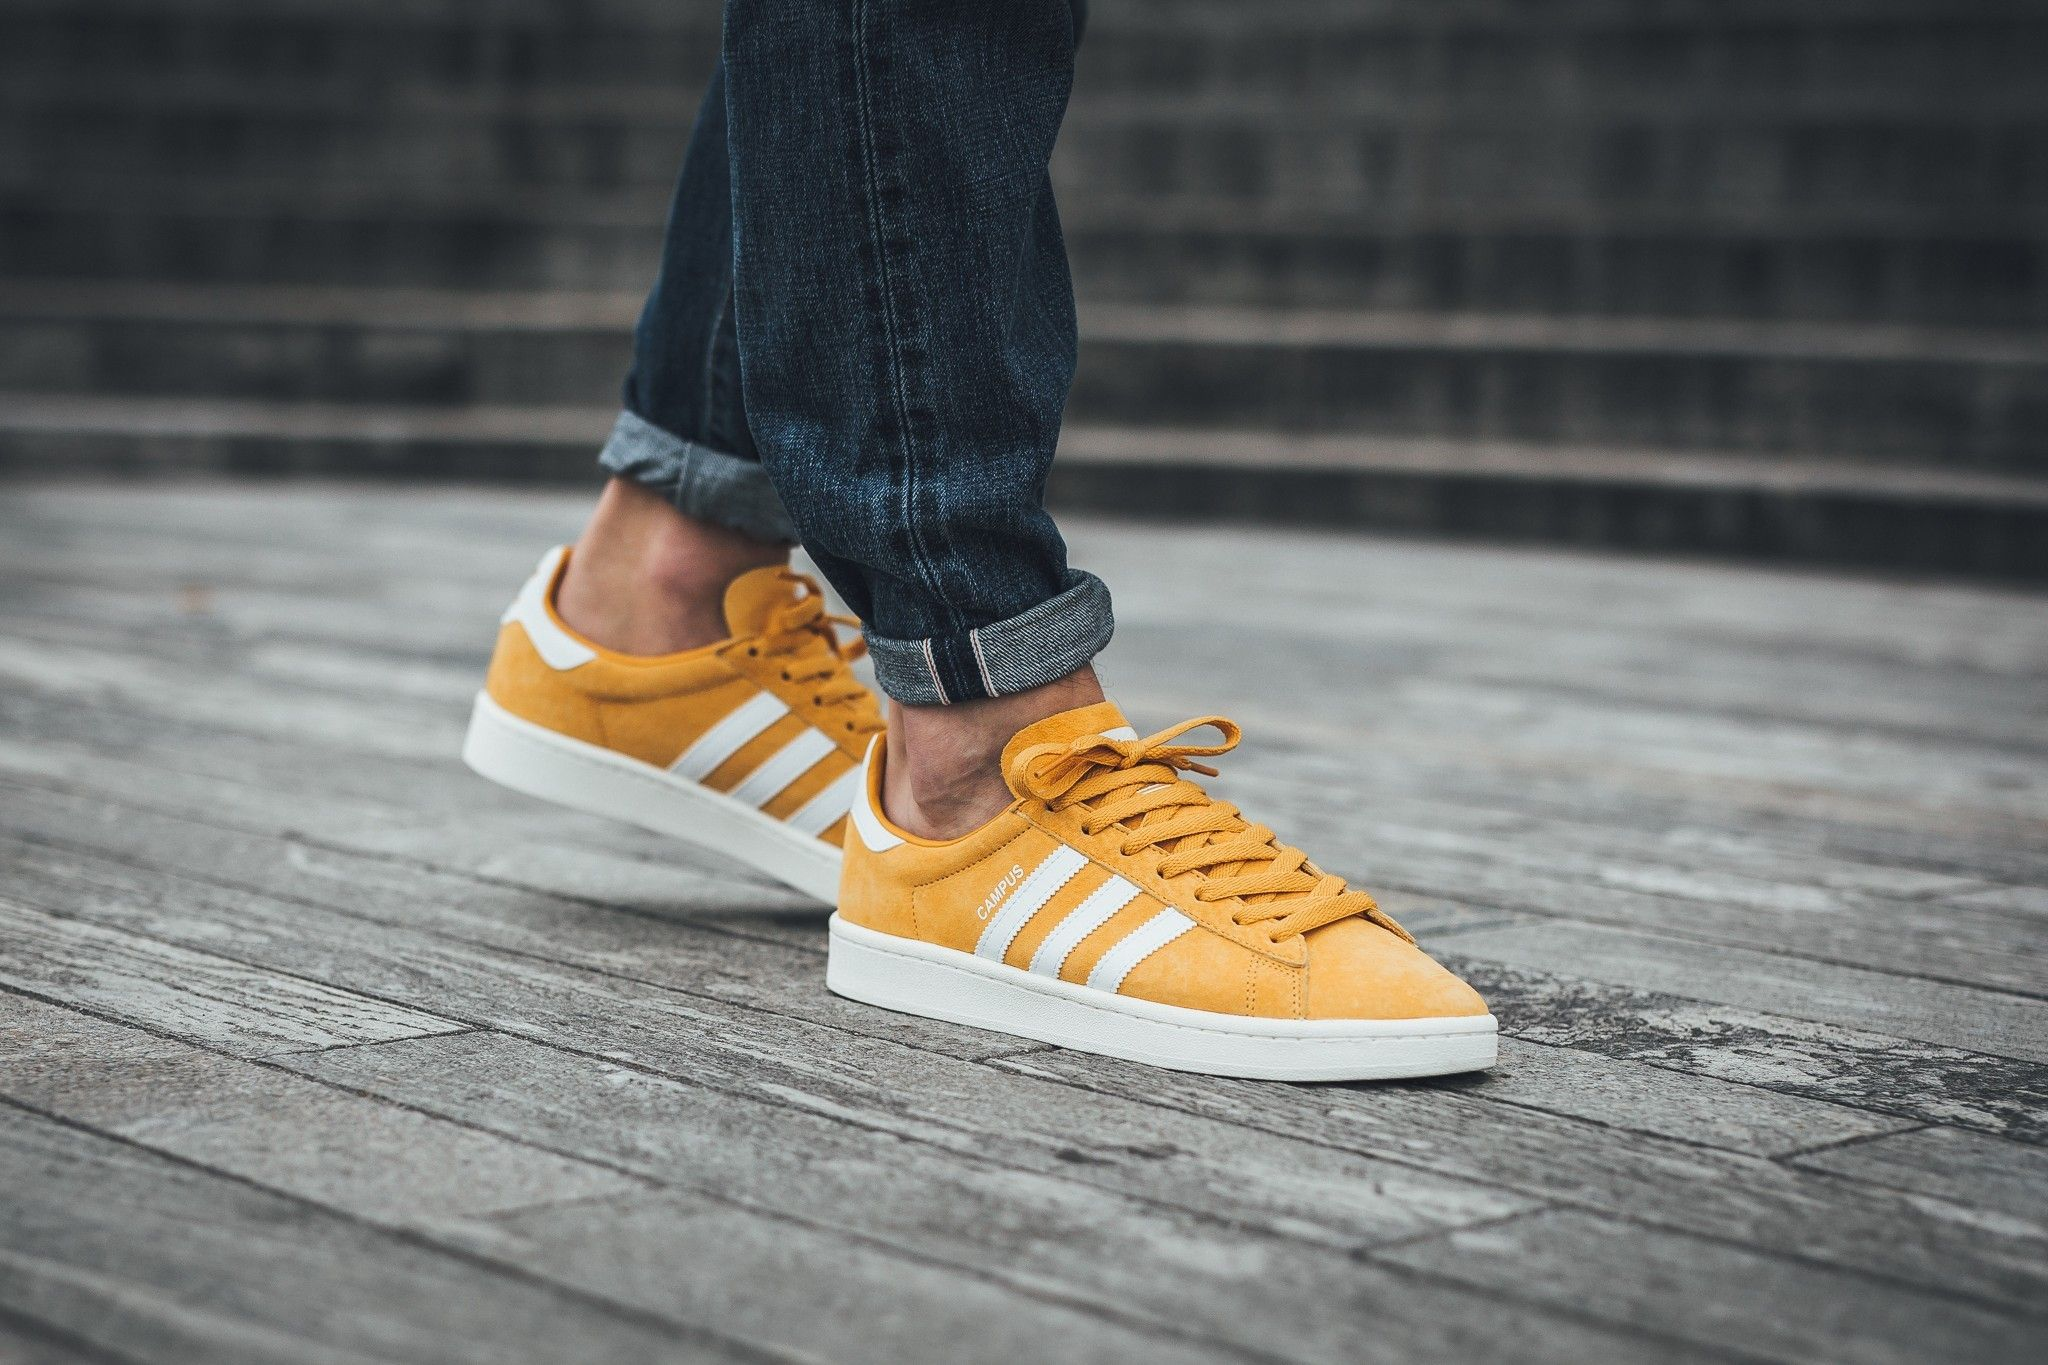 a6cdd2c1efb0 Discount adidas Campus Tactile Yellow Footwear White BZ0088 -  nicestylebay.com